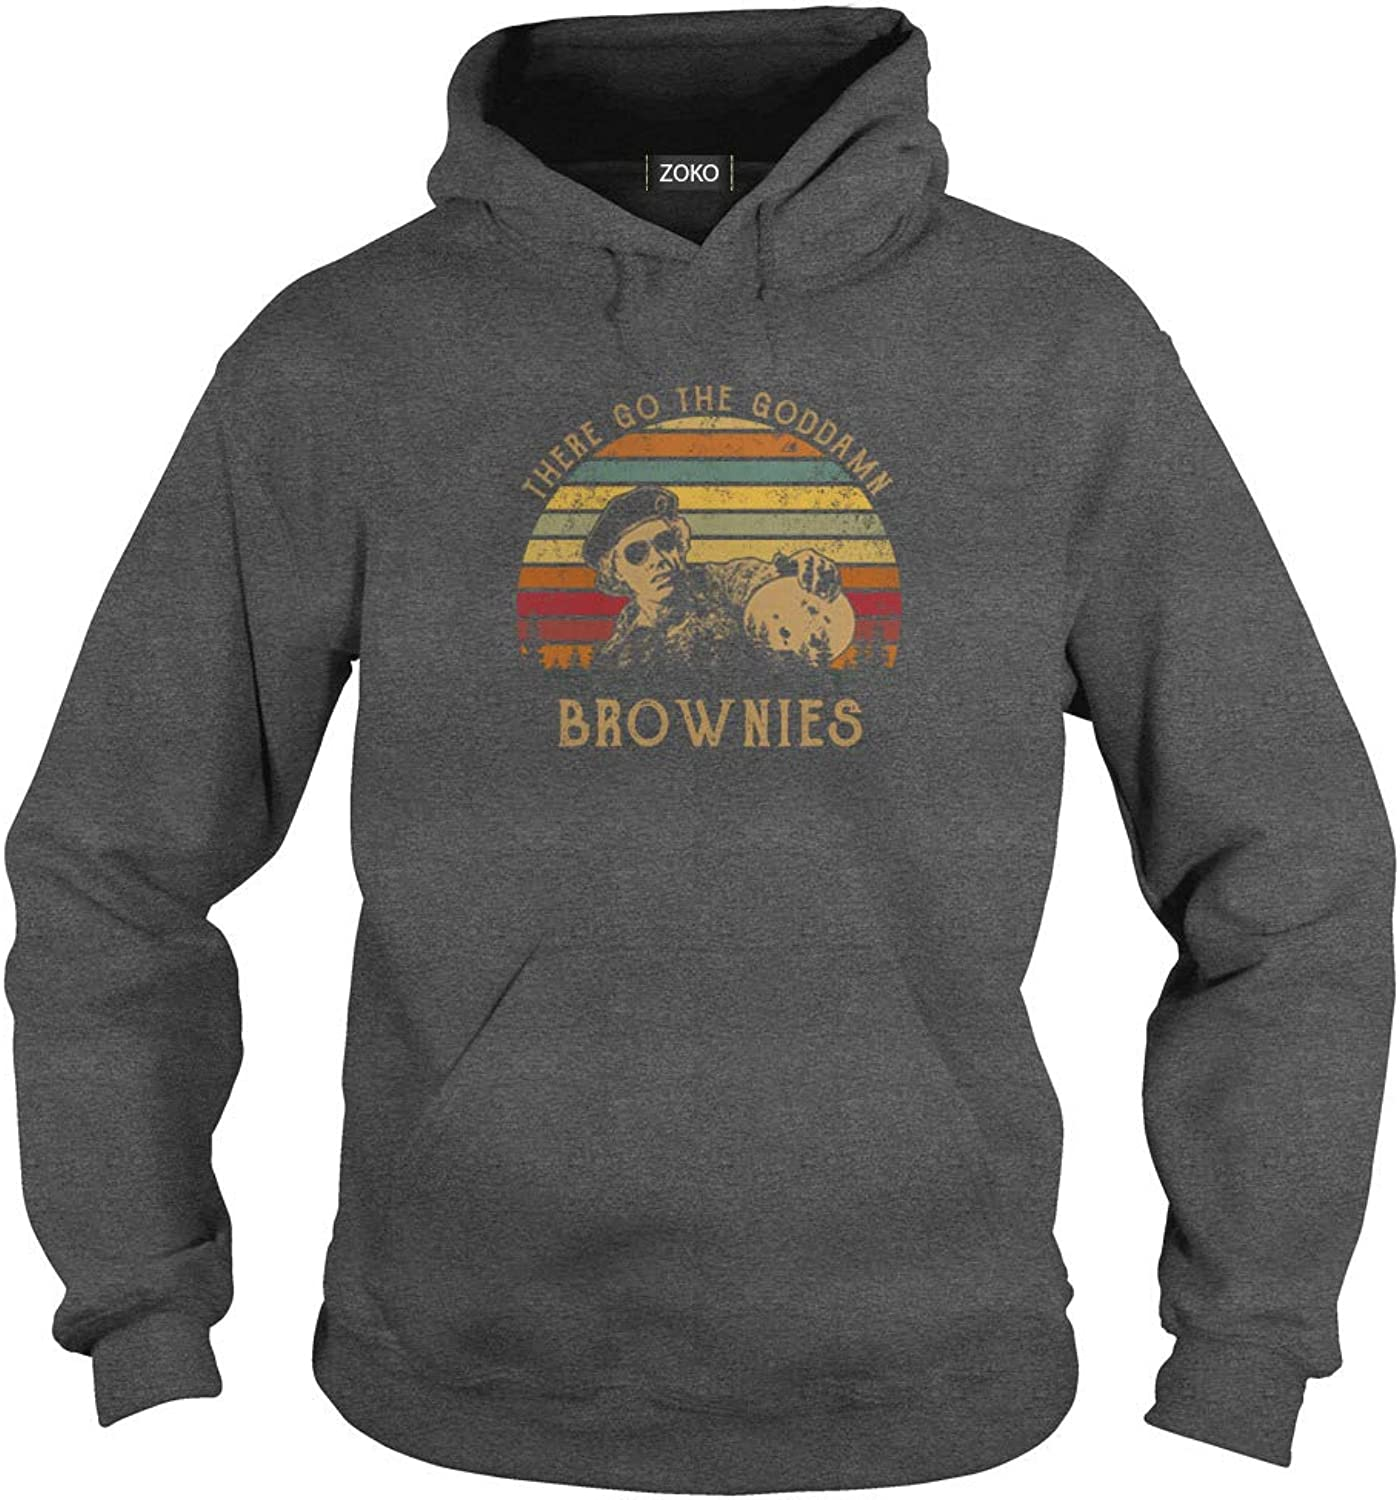 Zoko Apparel There Go The Goddamn Brownies Vintage TShirt